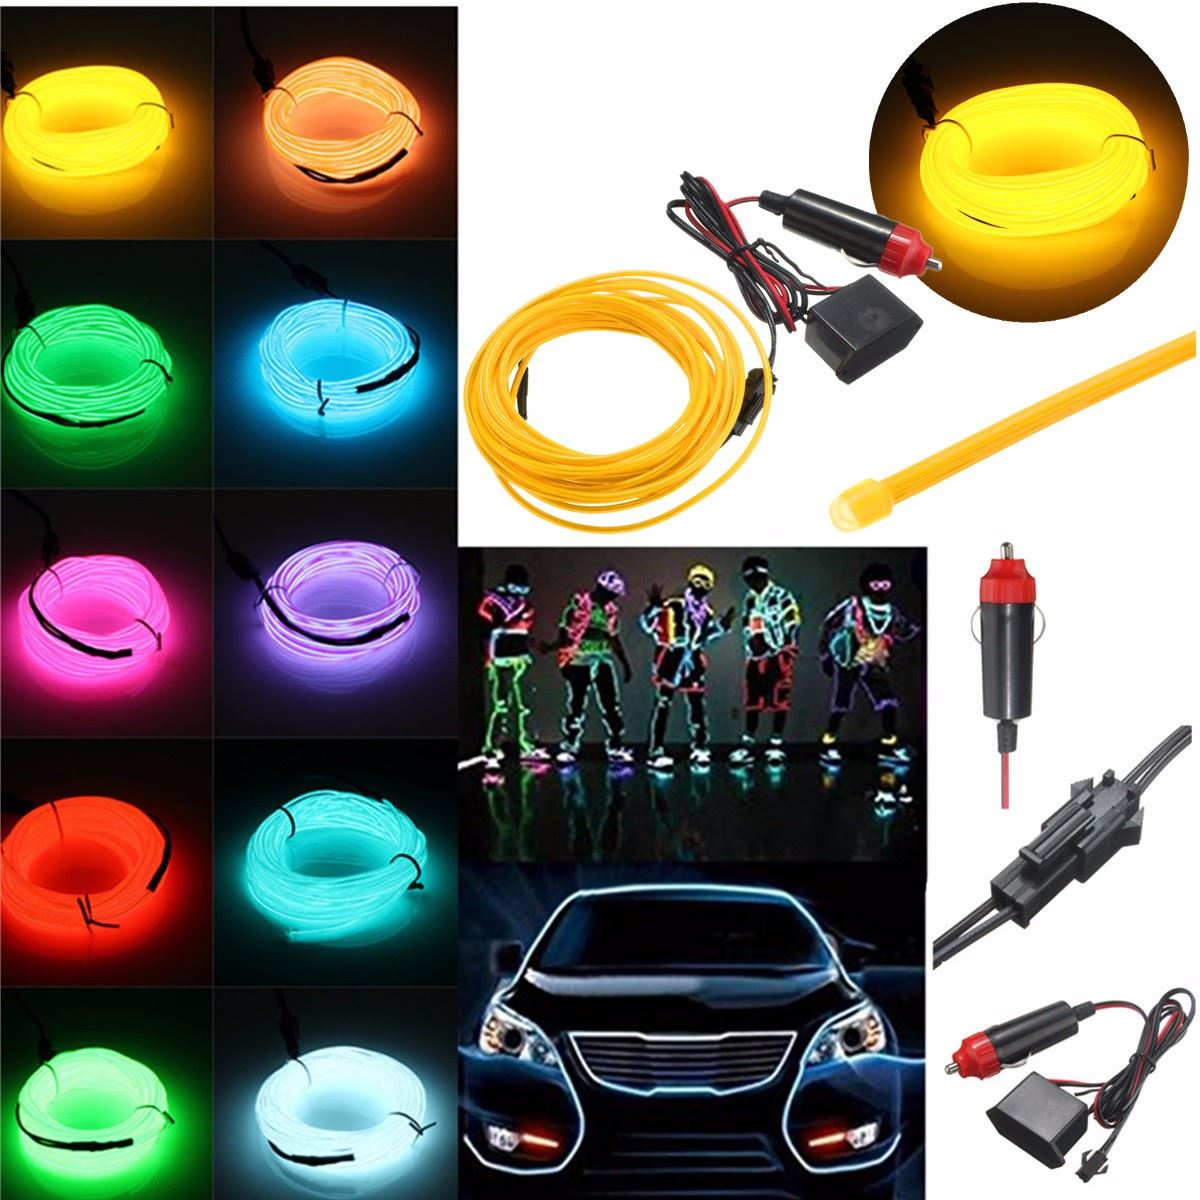 Newest 5M Multicolor Flexible EL Wire Rope Tube Strip Neon Cold Light Party Dance Car Decor With 12V Inverter(China (Mainland))